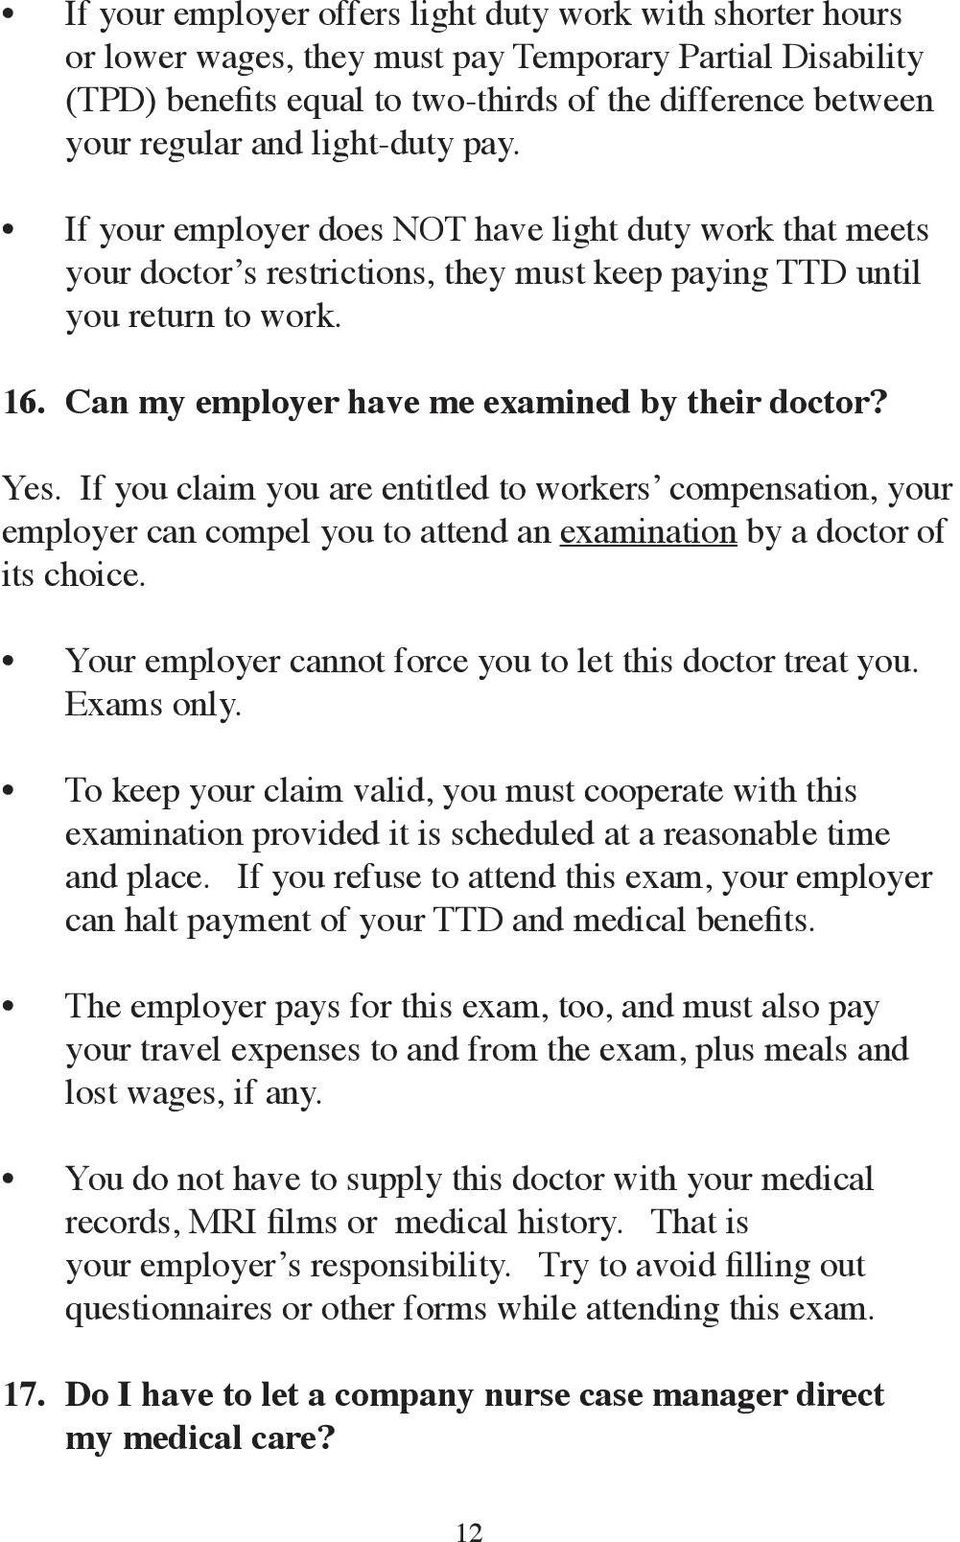 Can my employer have me examined by their doctor? Yes. If you claim you are entitled to workers compensation, your employer can compel you to attend an examination by a doctor of its choice.